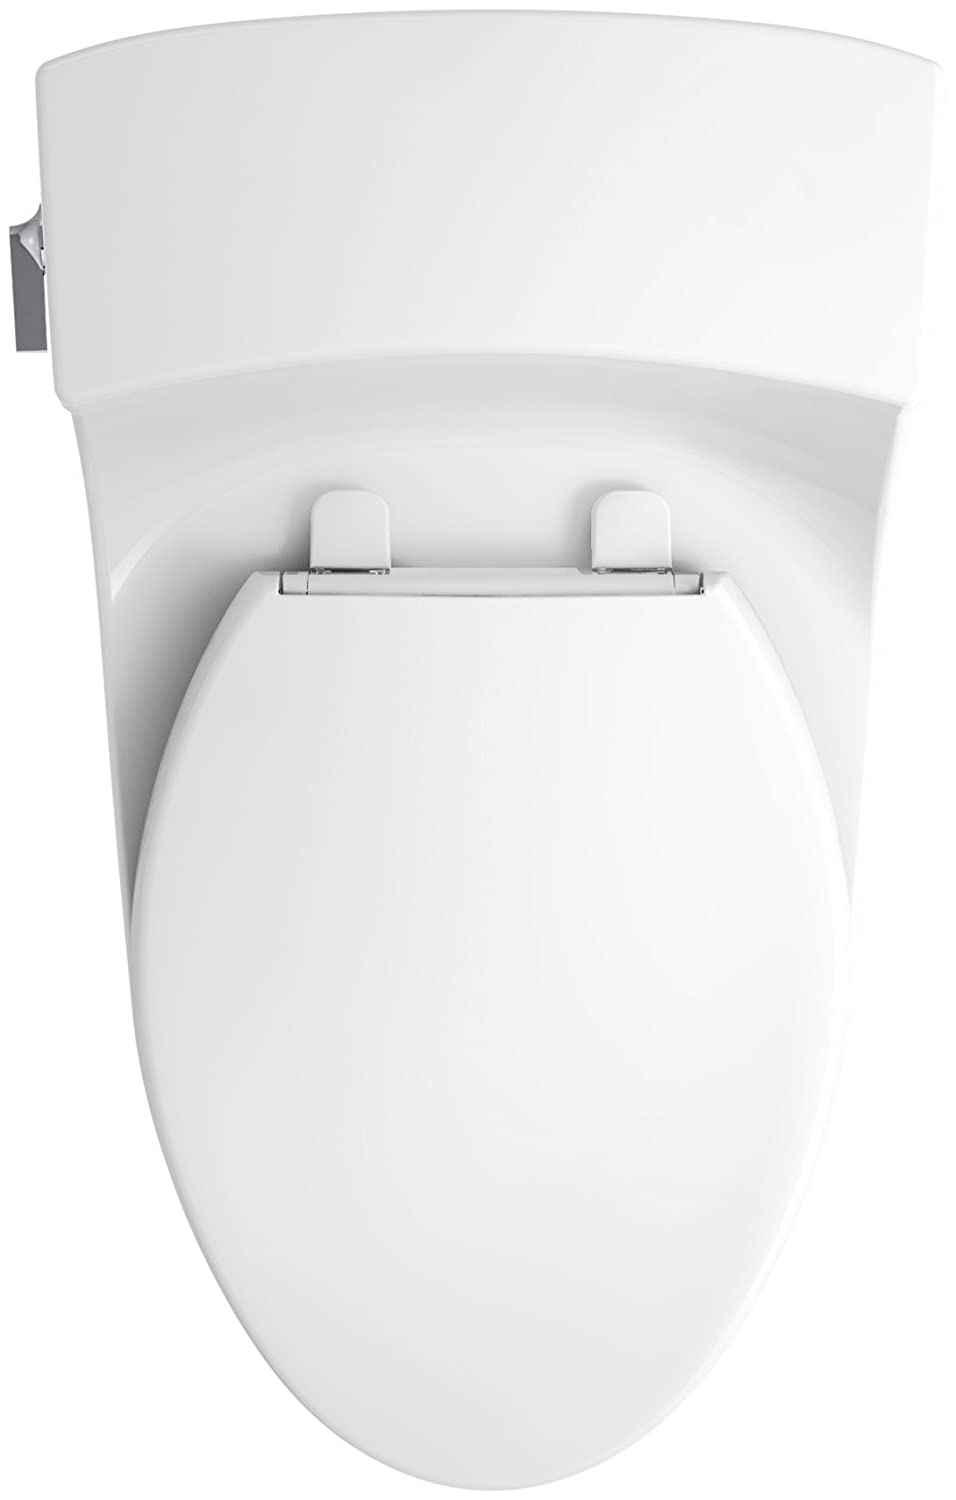 KOHLER K-5172-0 San Souci Comfort Height Compact Elongated 1.28 GPF ...